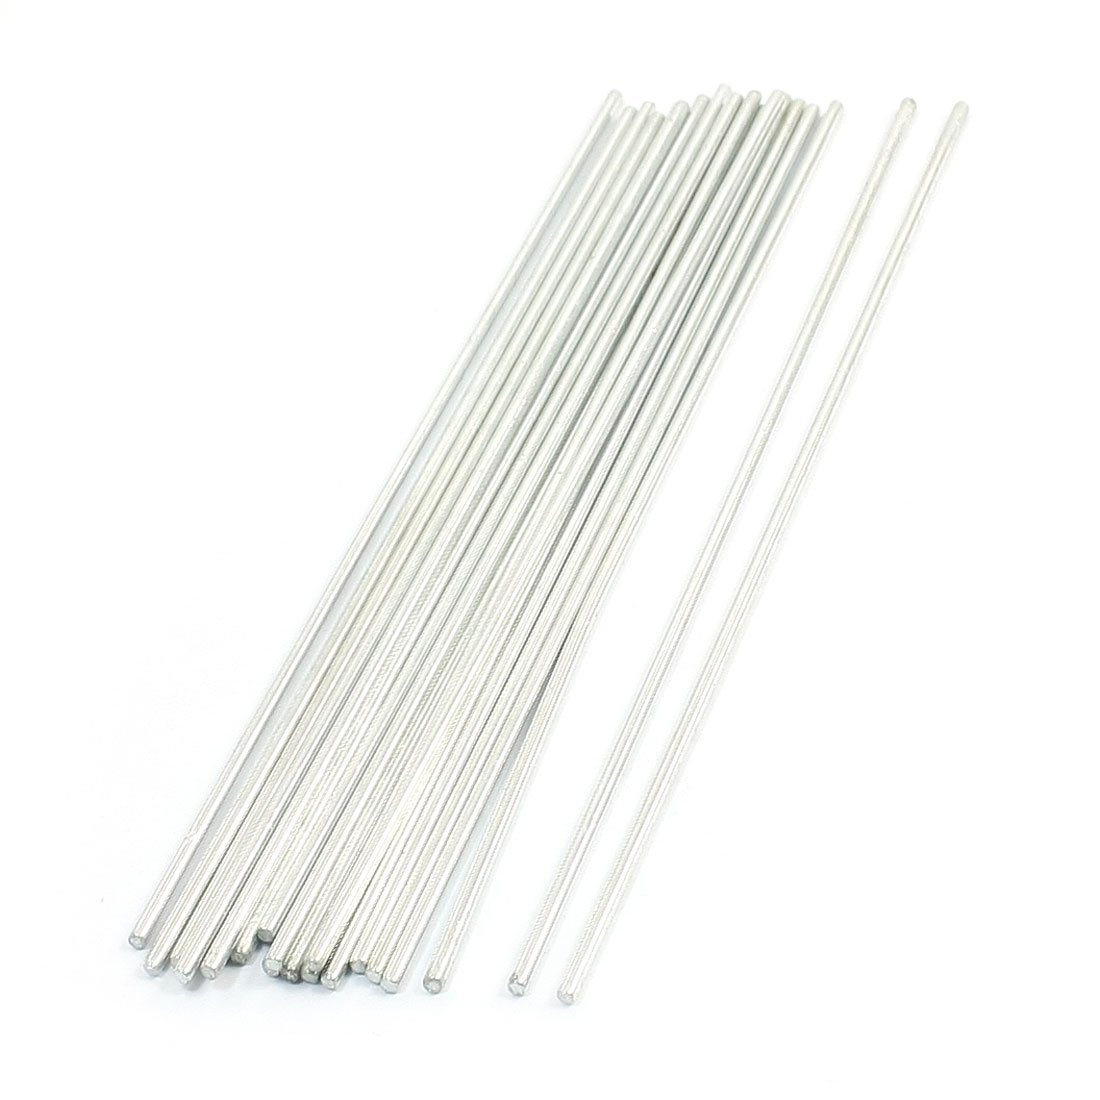 20pcs Stainless Steel Round Shaft Rod Axles 150mmx2mm For